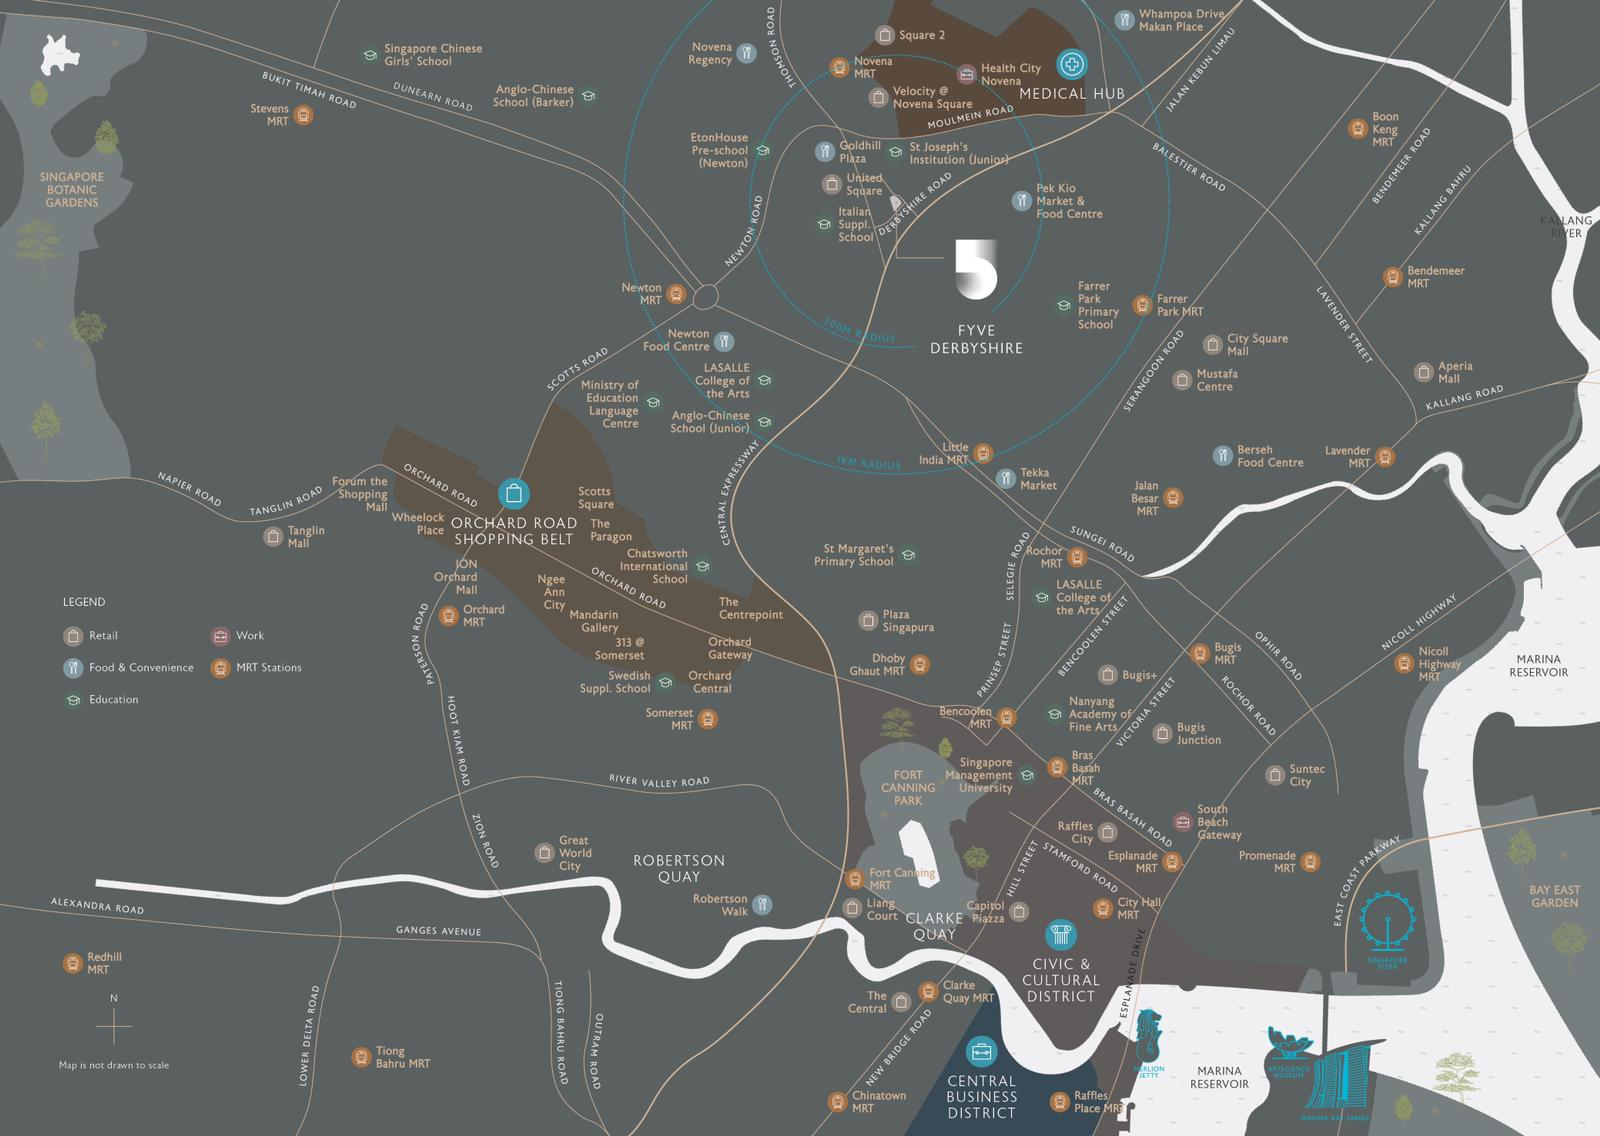 Fyve Derbyshire Location Amenities Map